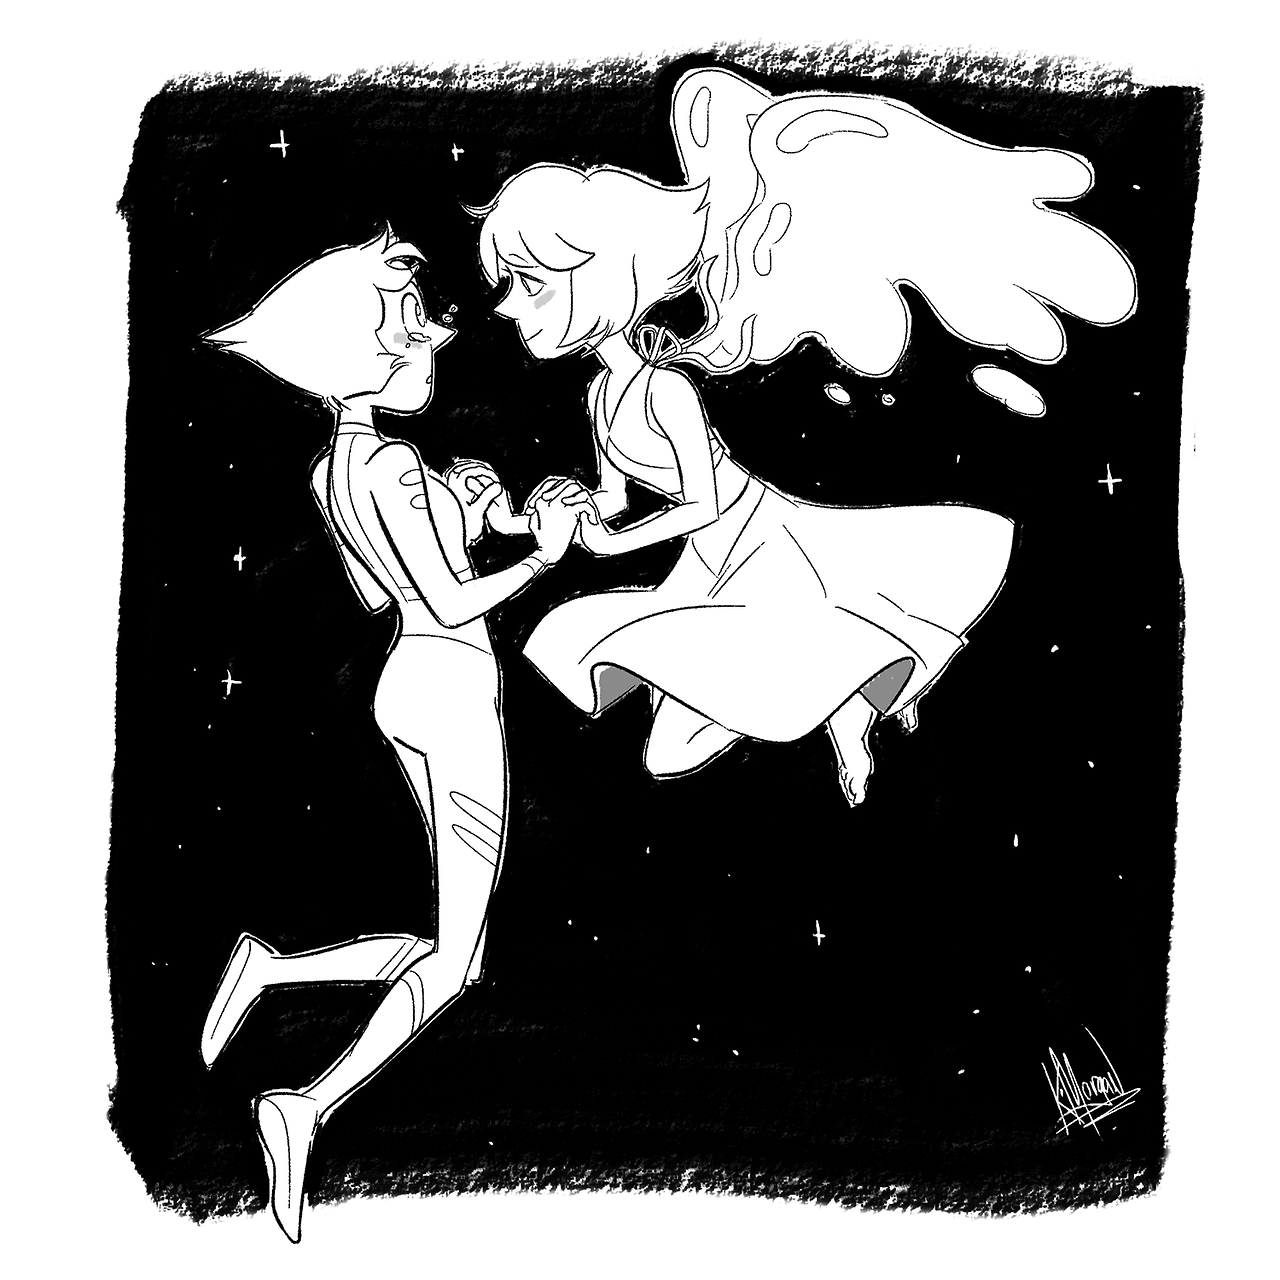 For the last day of @pearlapisbomb Thank you to everyone who participated and shared all the lovely art and fic!